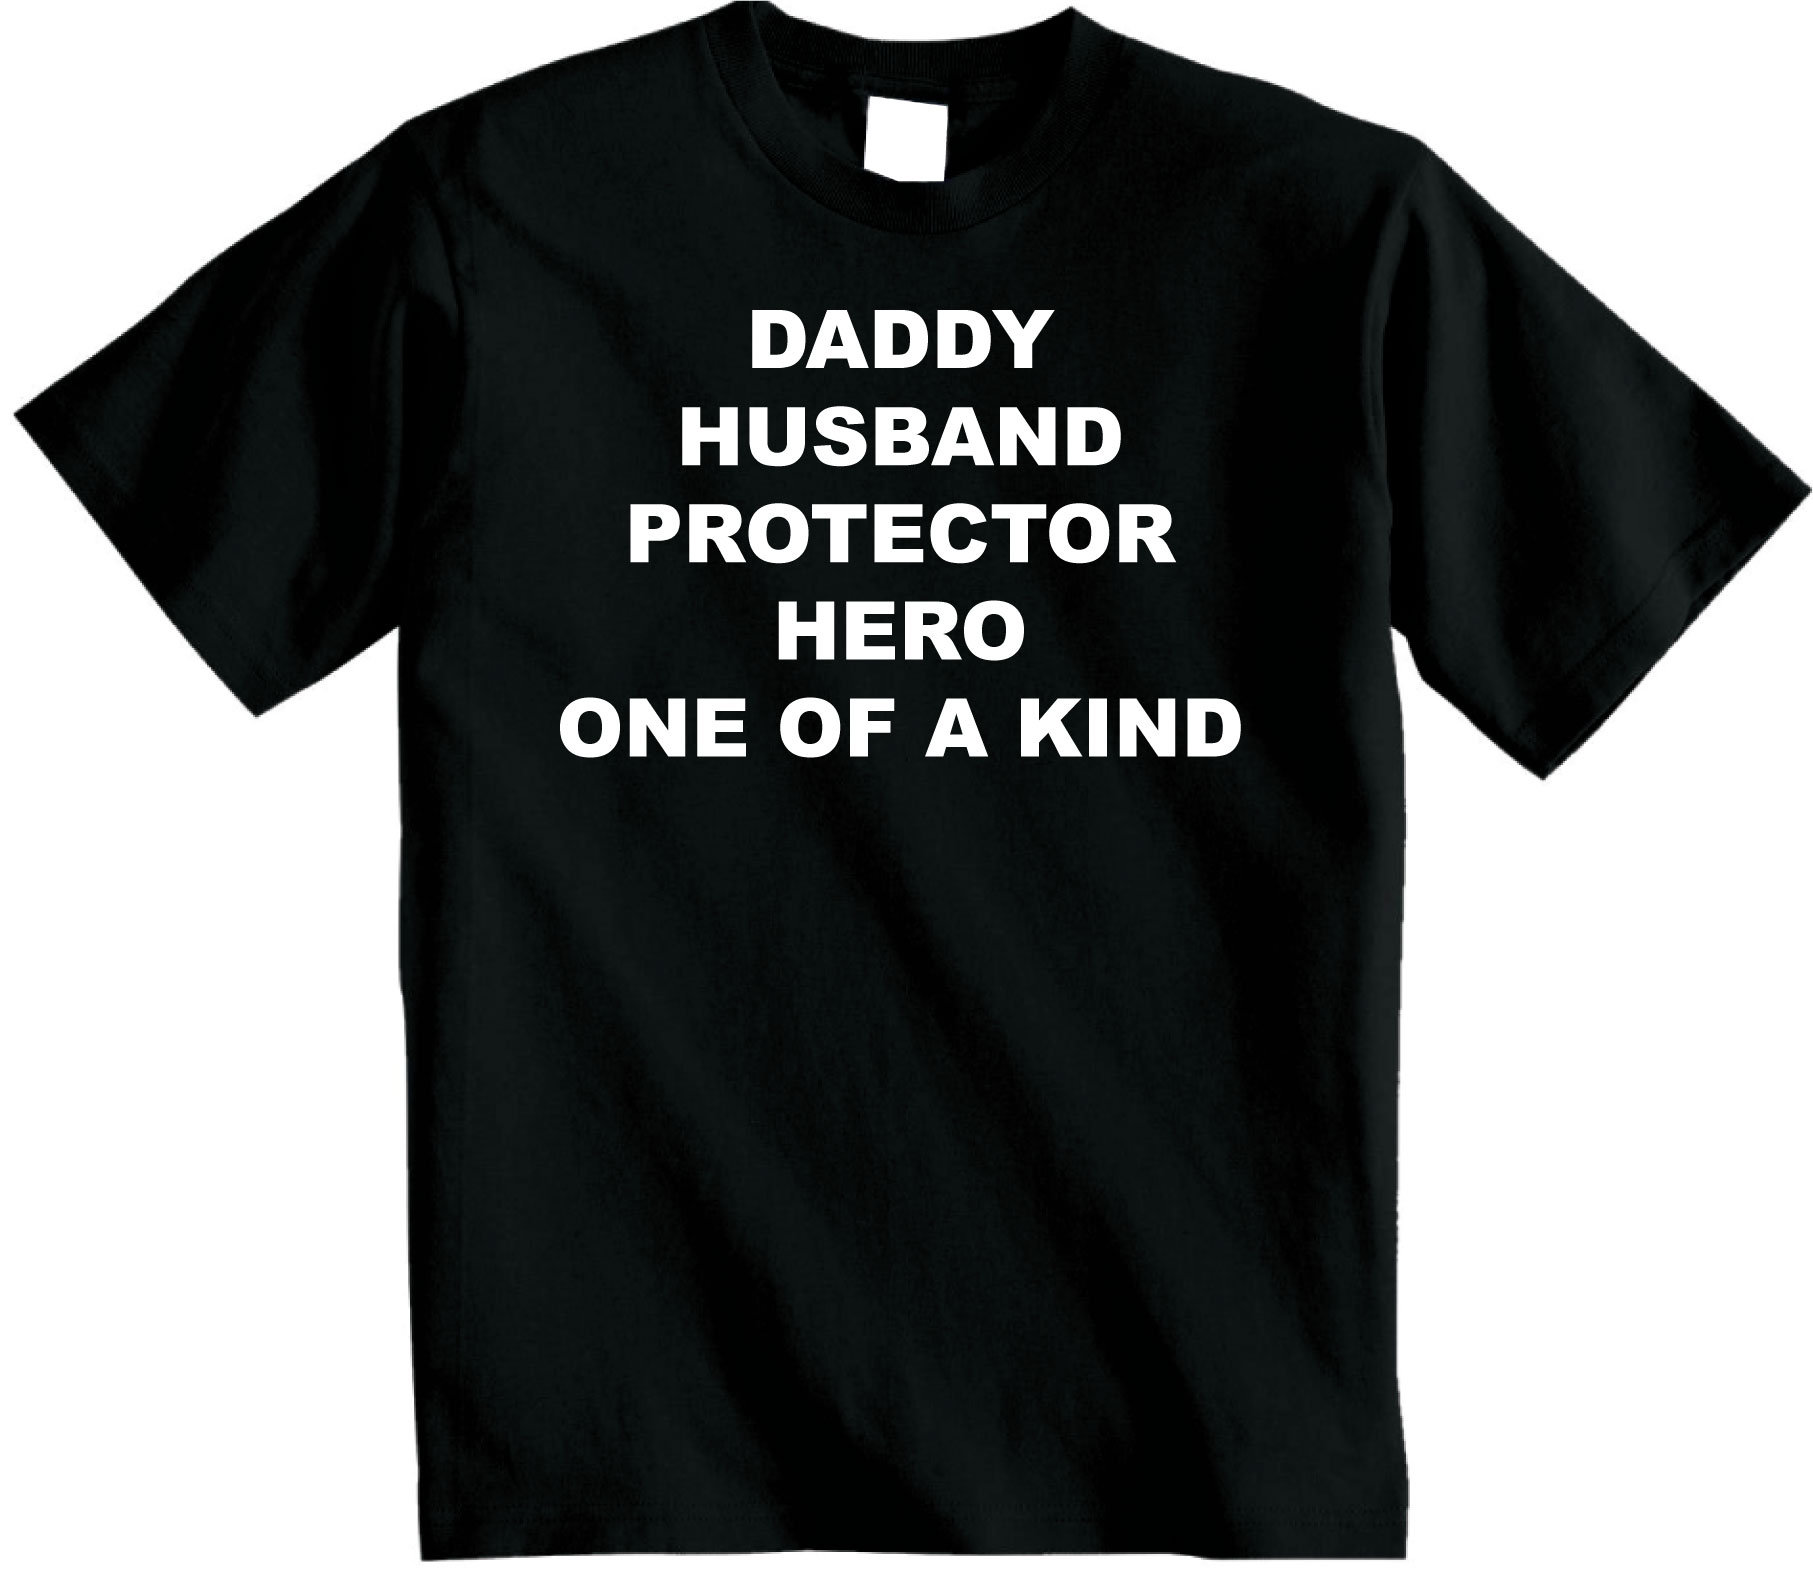 Daddy Husband Protector Hero One of a Kind  T-shirt